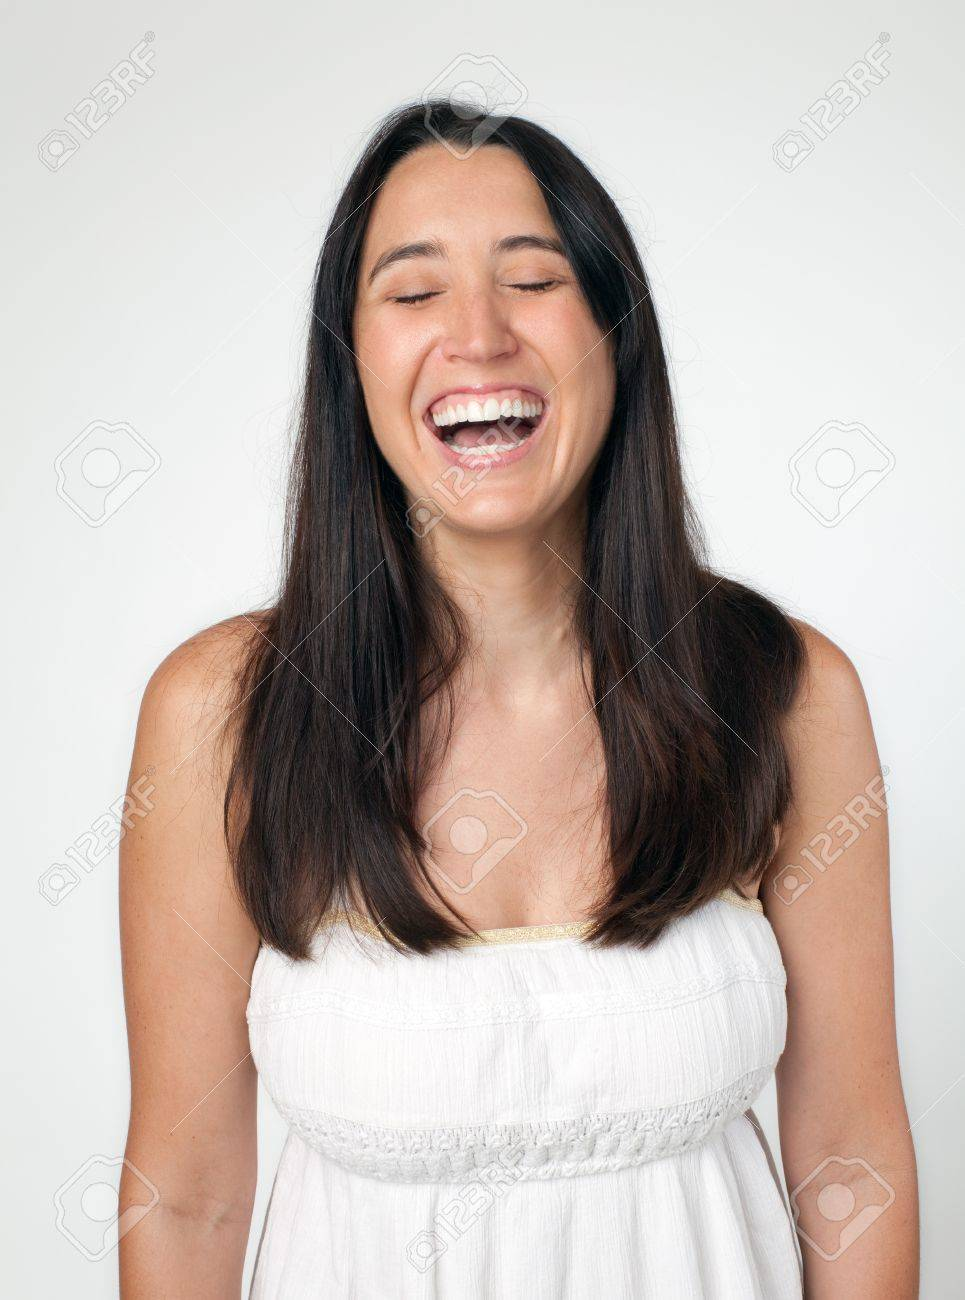 Woman laughing with eyes closed Stock Photo - 8628375